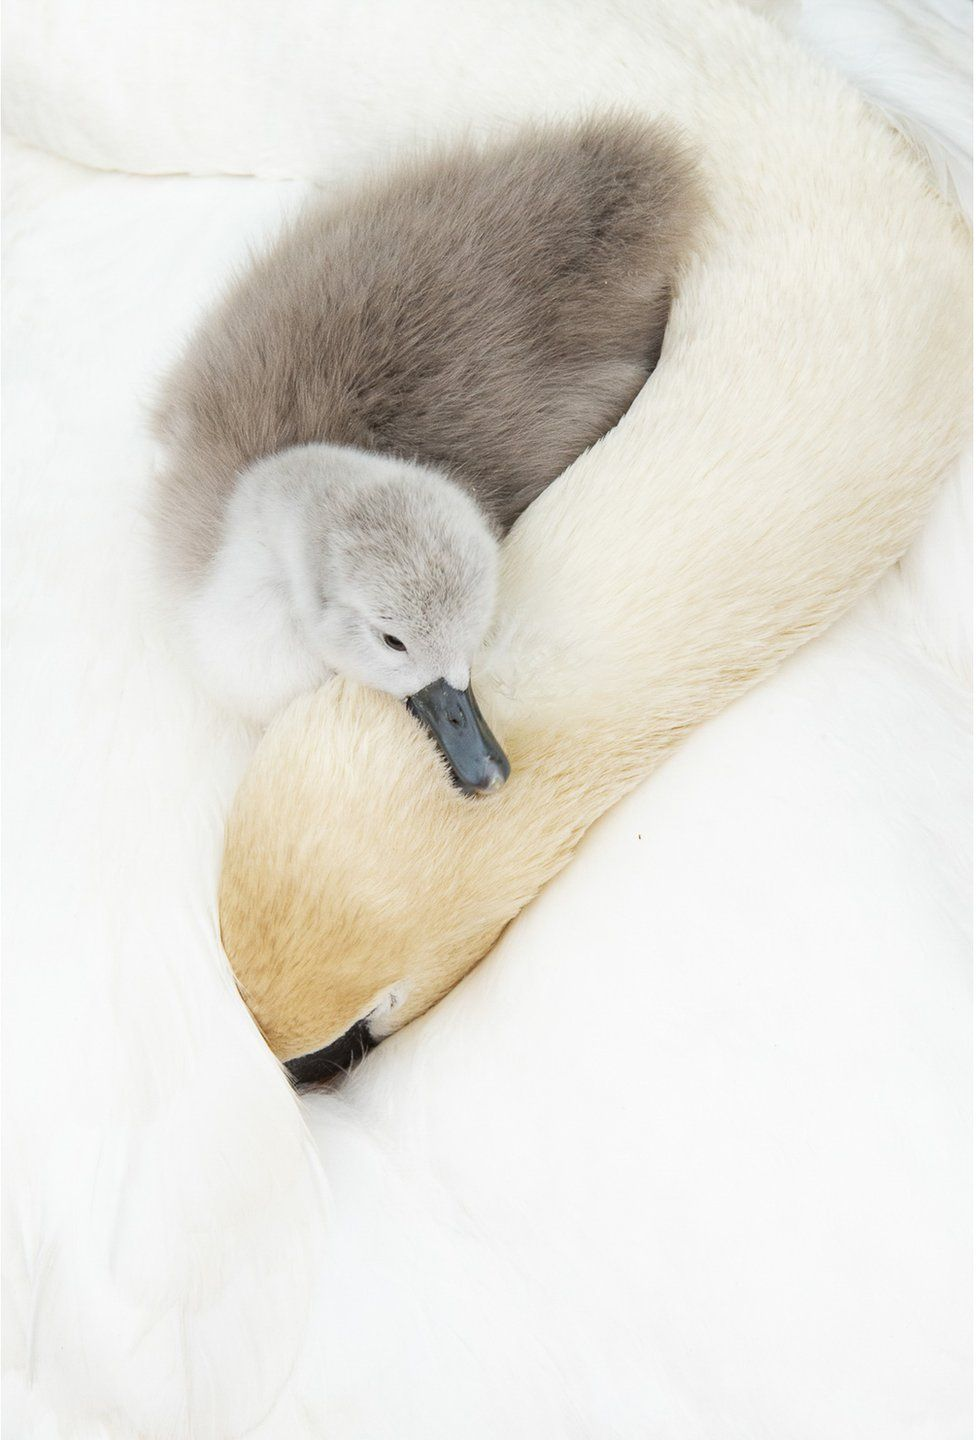 A baby swan rests its head on its mother's neck